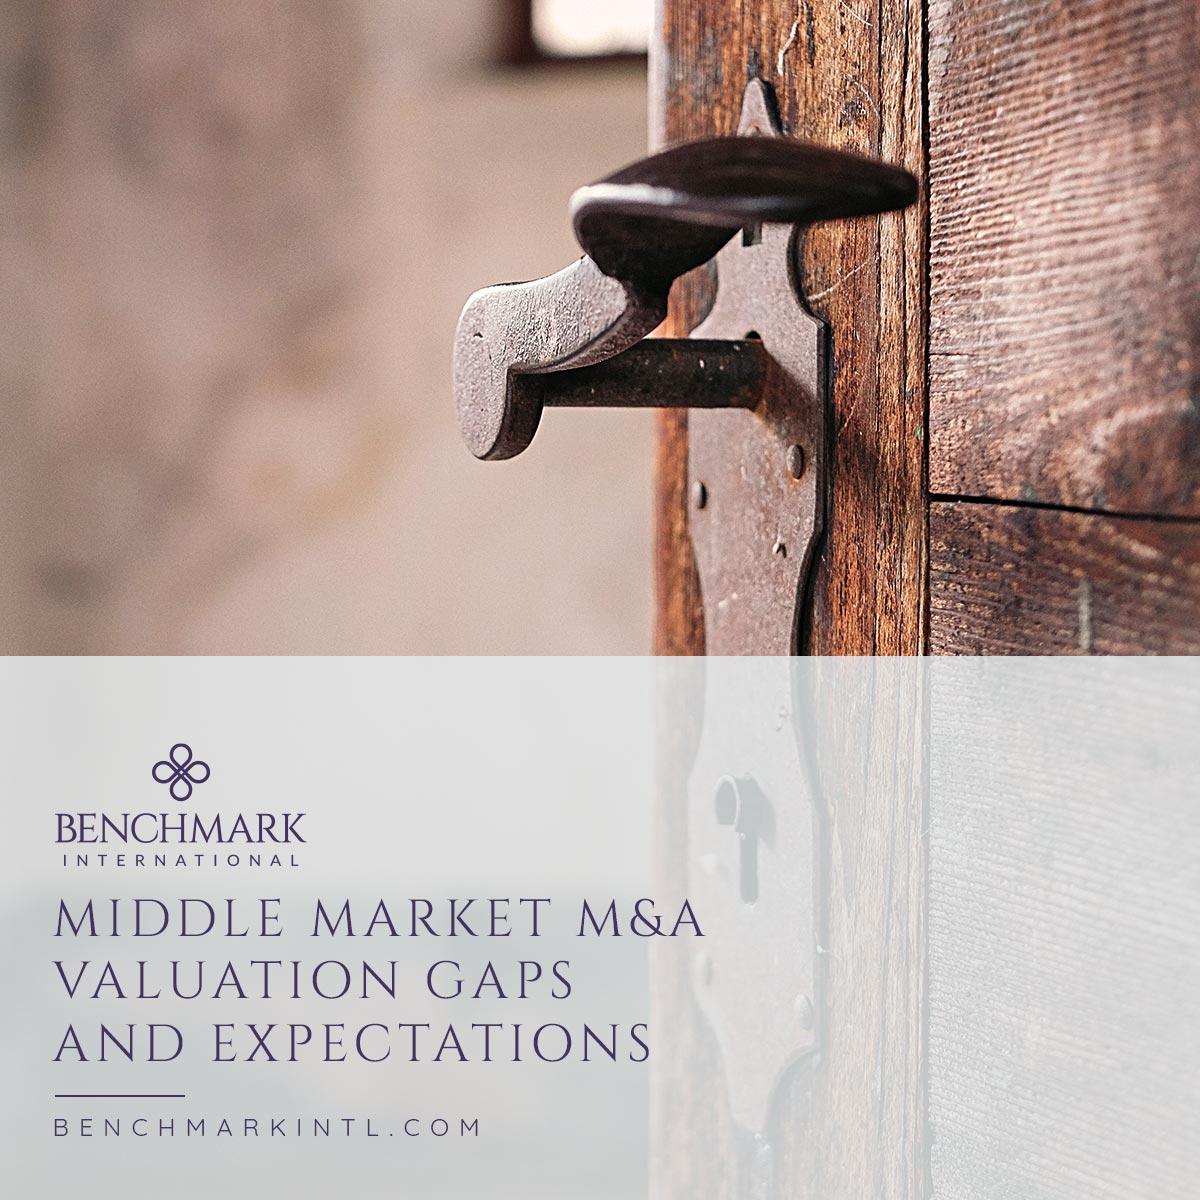 Middle_Market_M&A_Valuation_Gaps_and_Expectations_Social